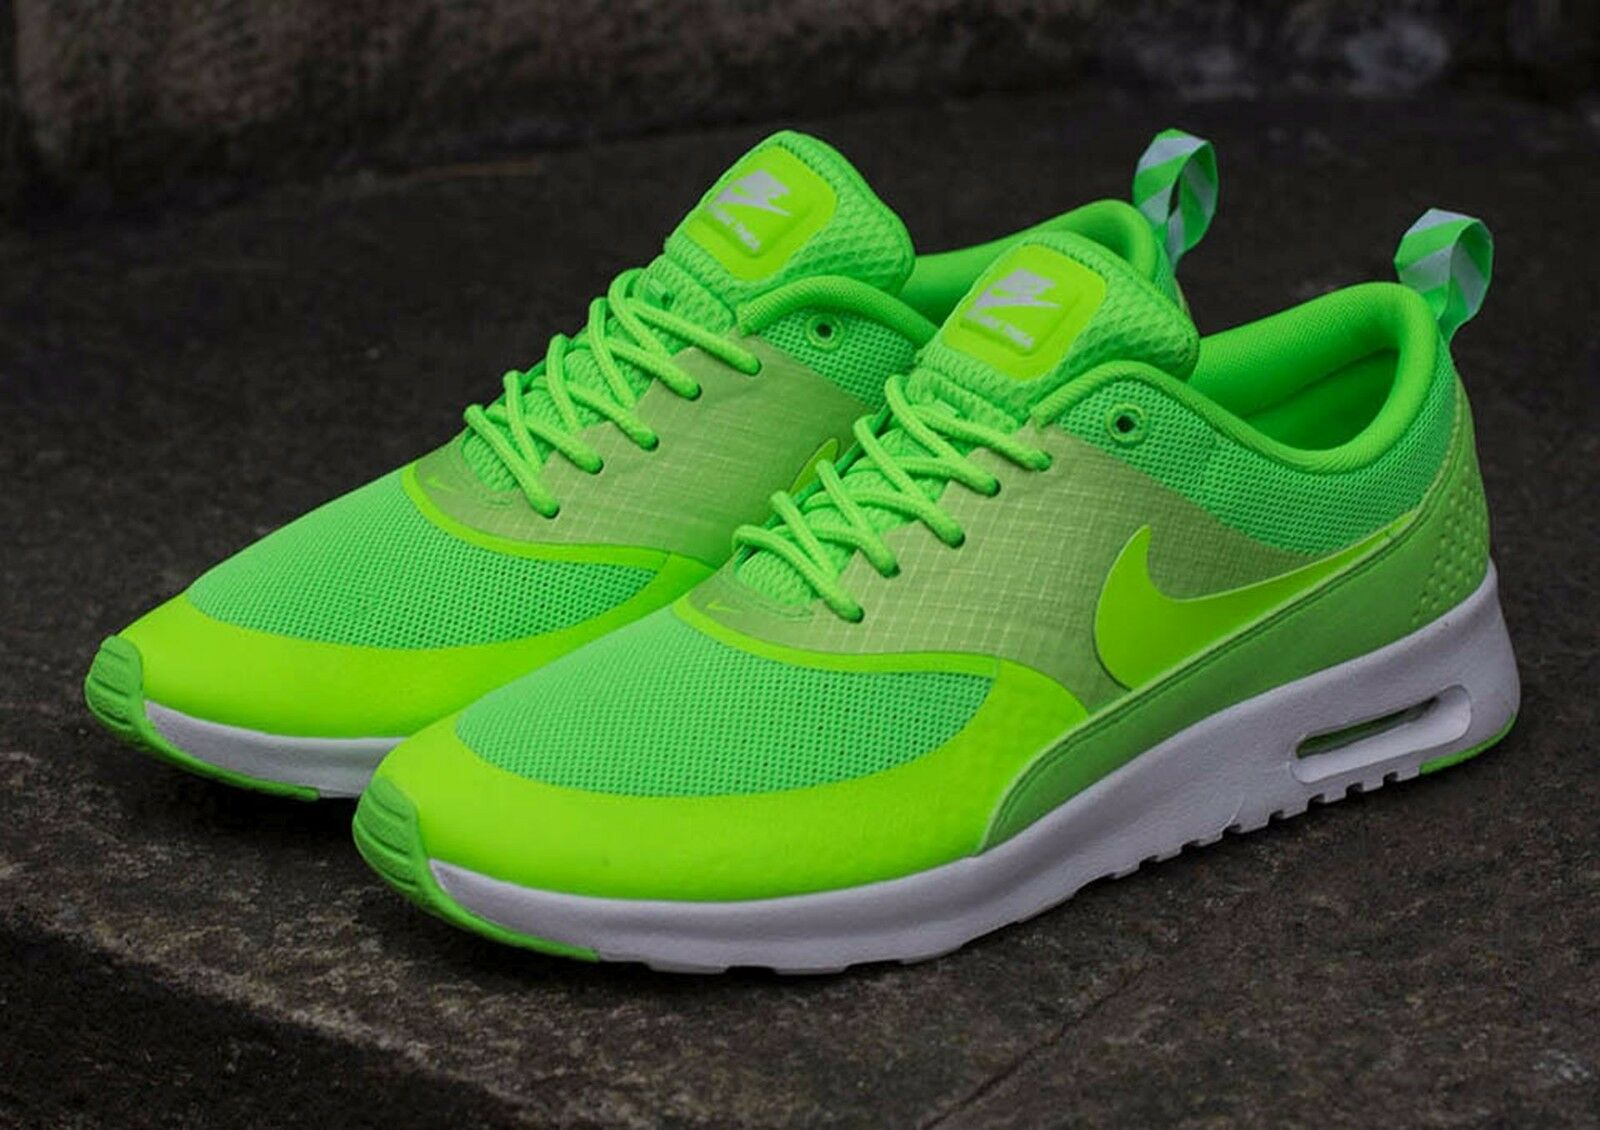 timeless design 98472 f1b21 ... best price nike air max thea taille s chaussures taille thea 65 599409  300 flash lime